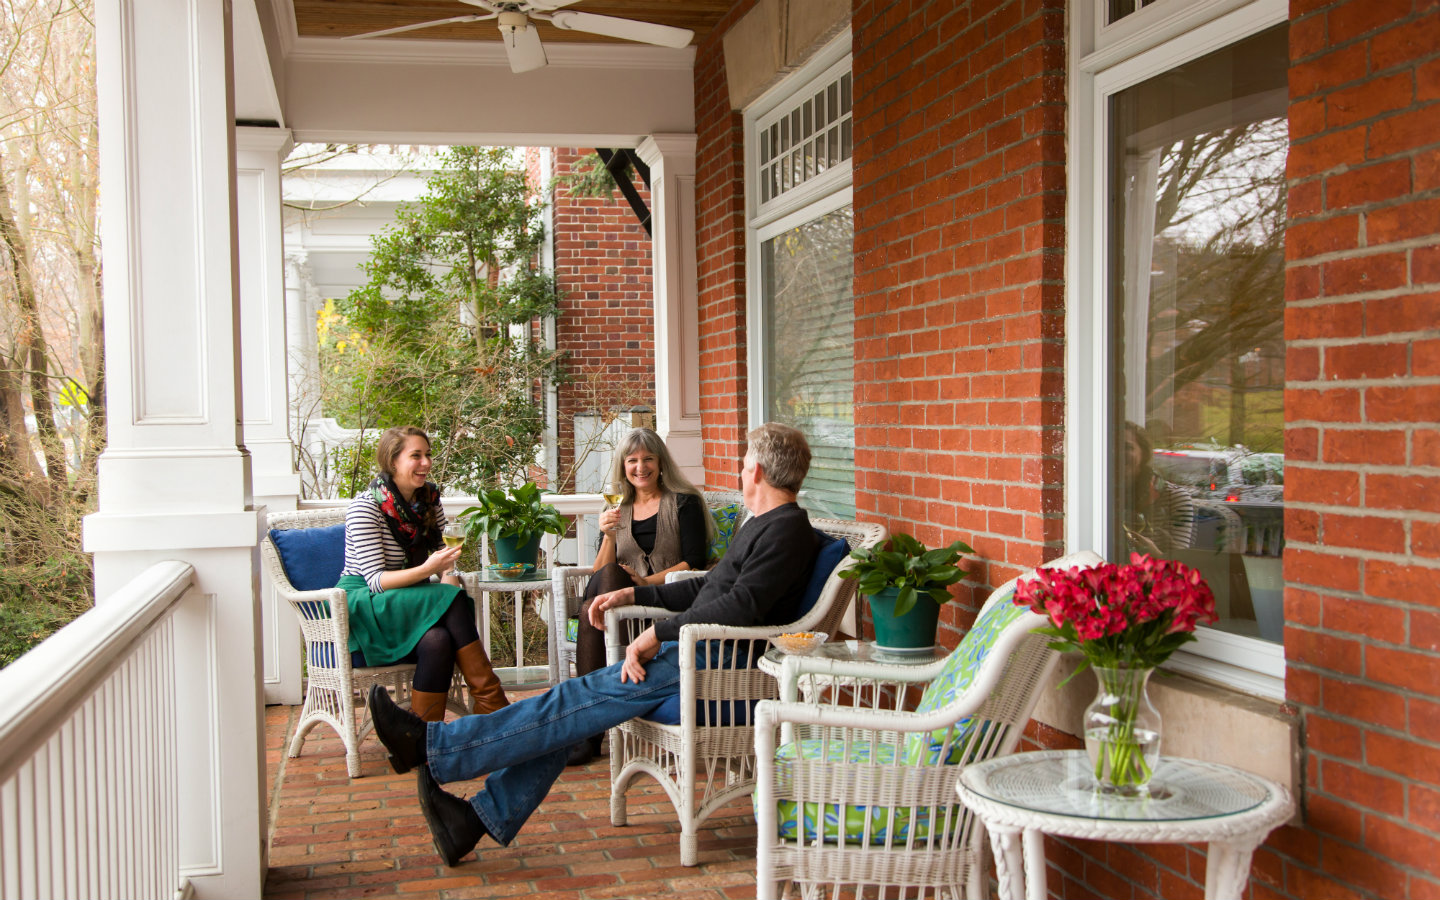 People chatting on a lovely front porch